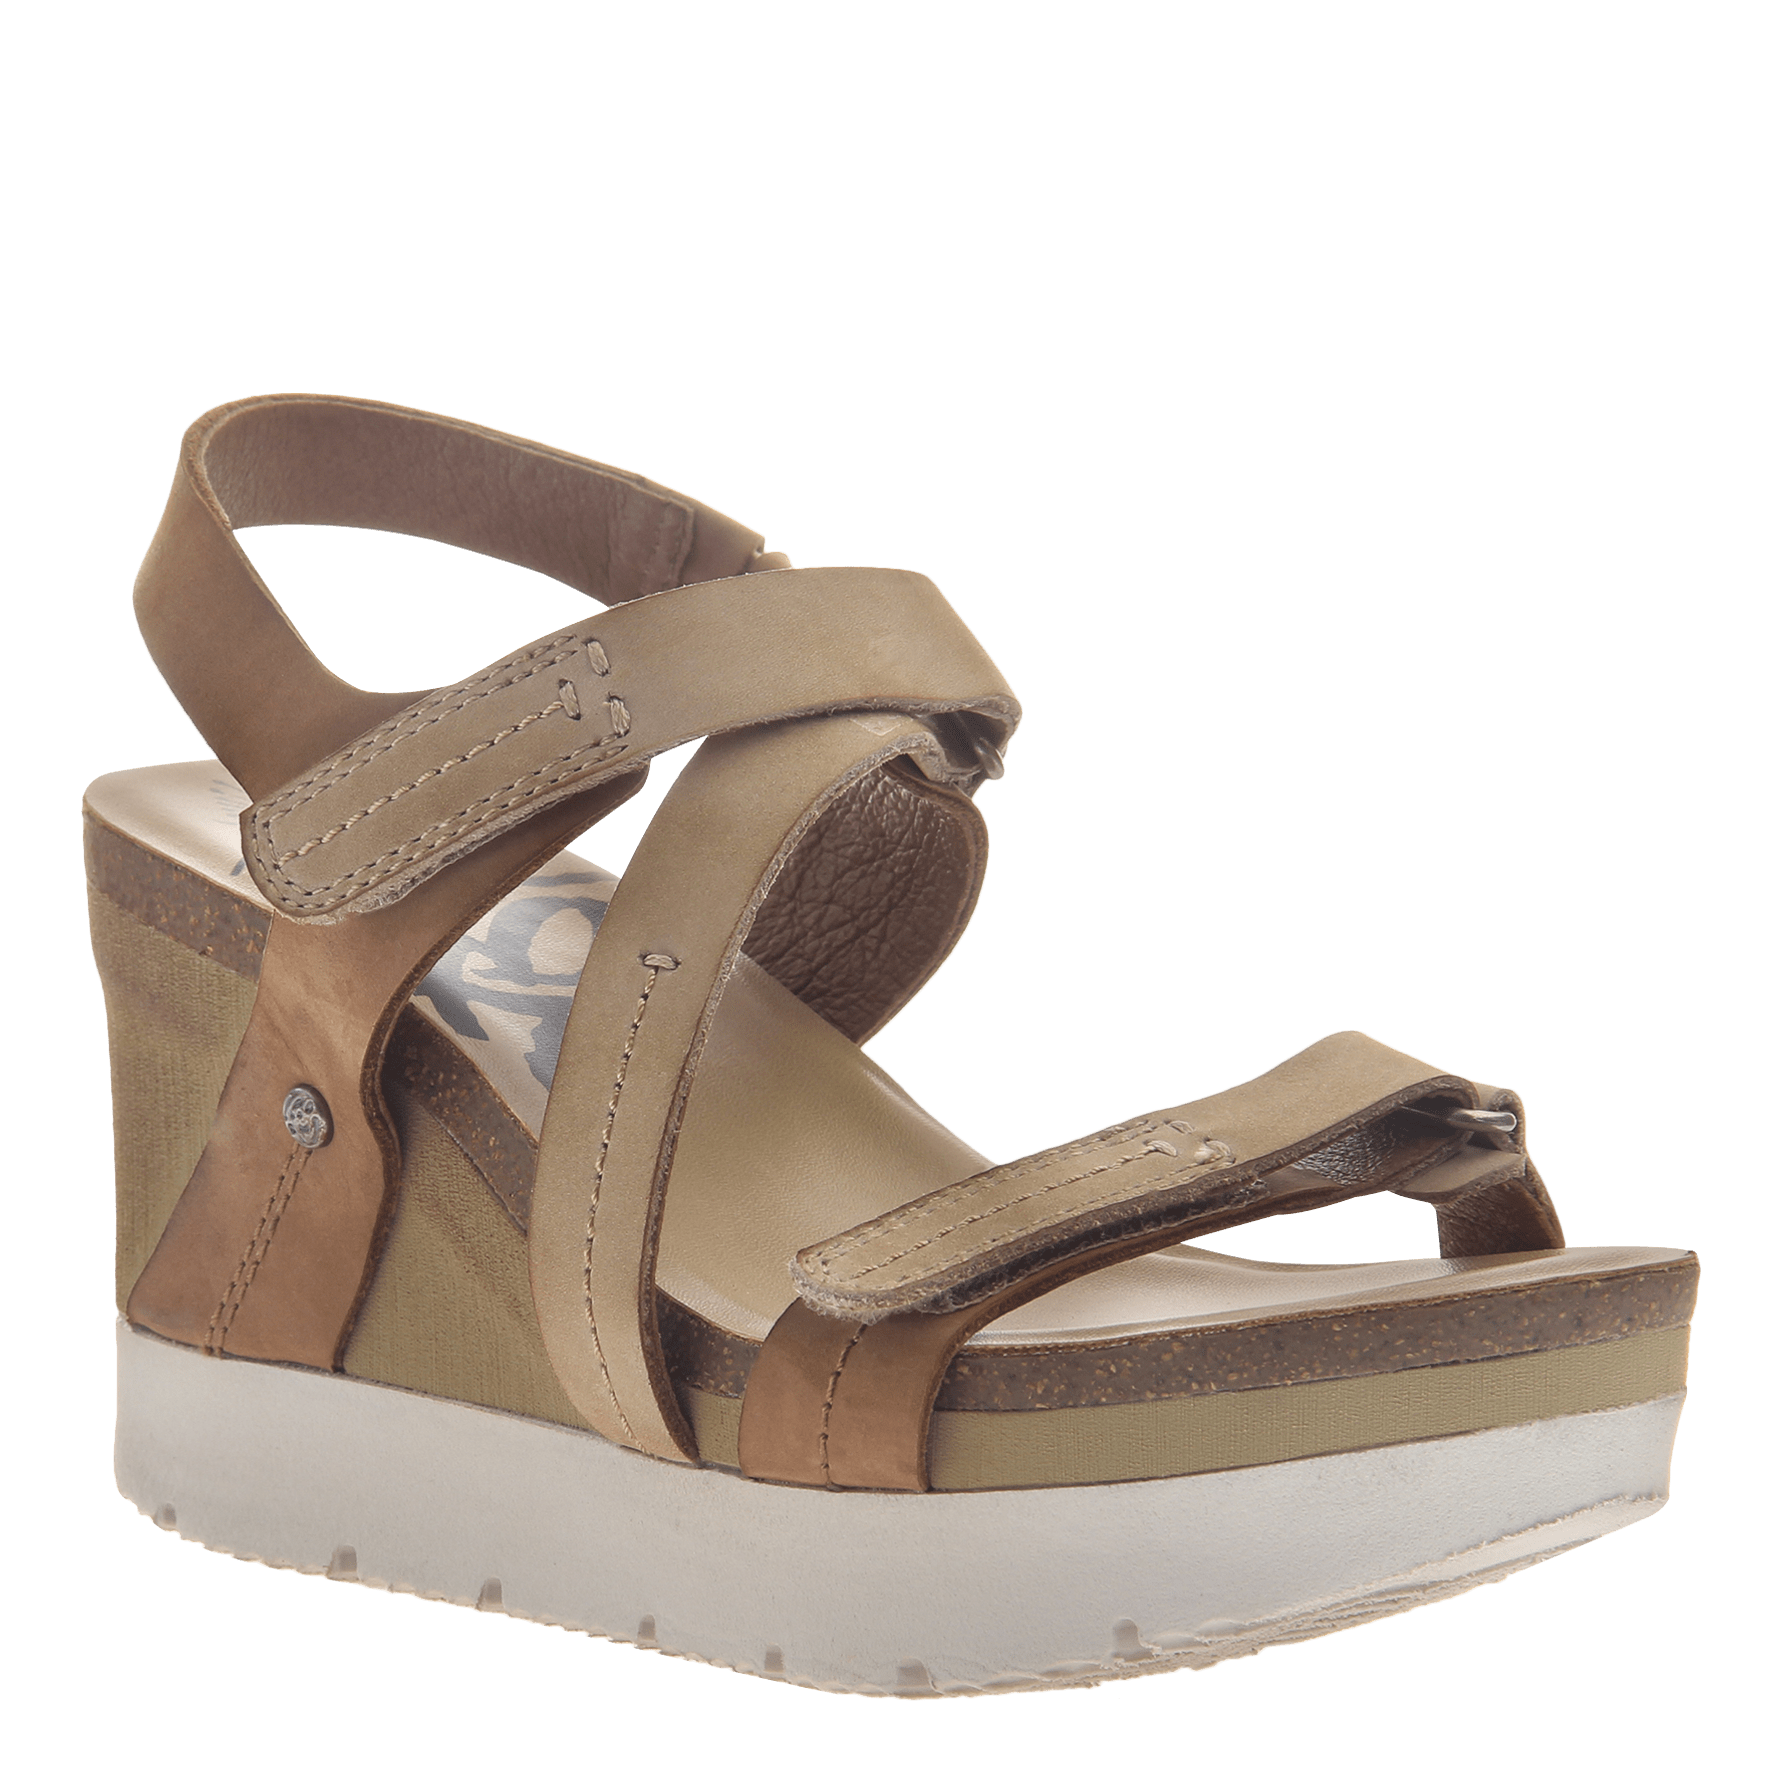 fda20fbc50f Womens wedge sandals wavey in Mid Brown